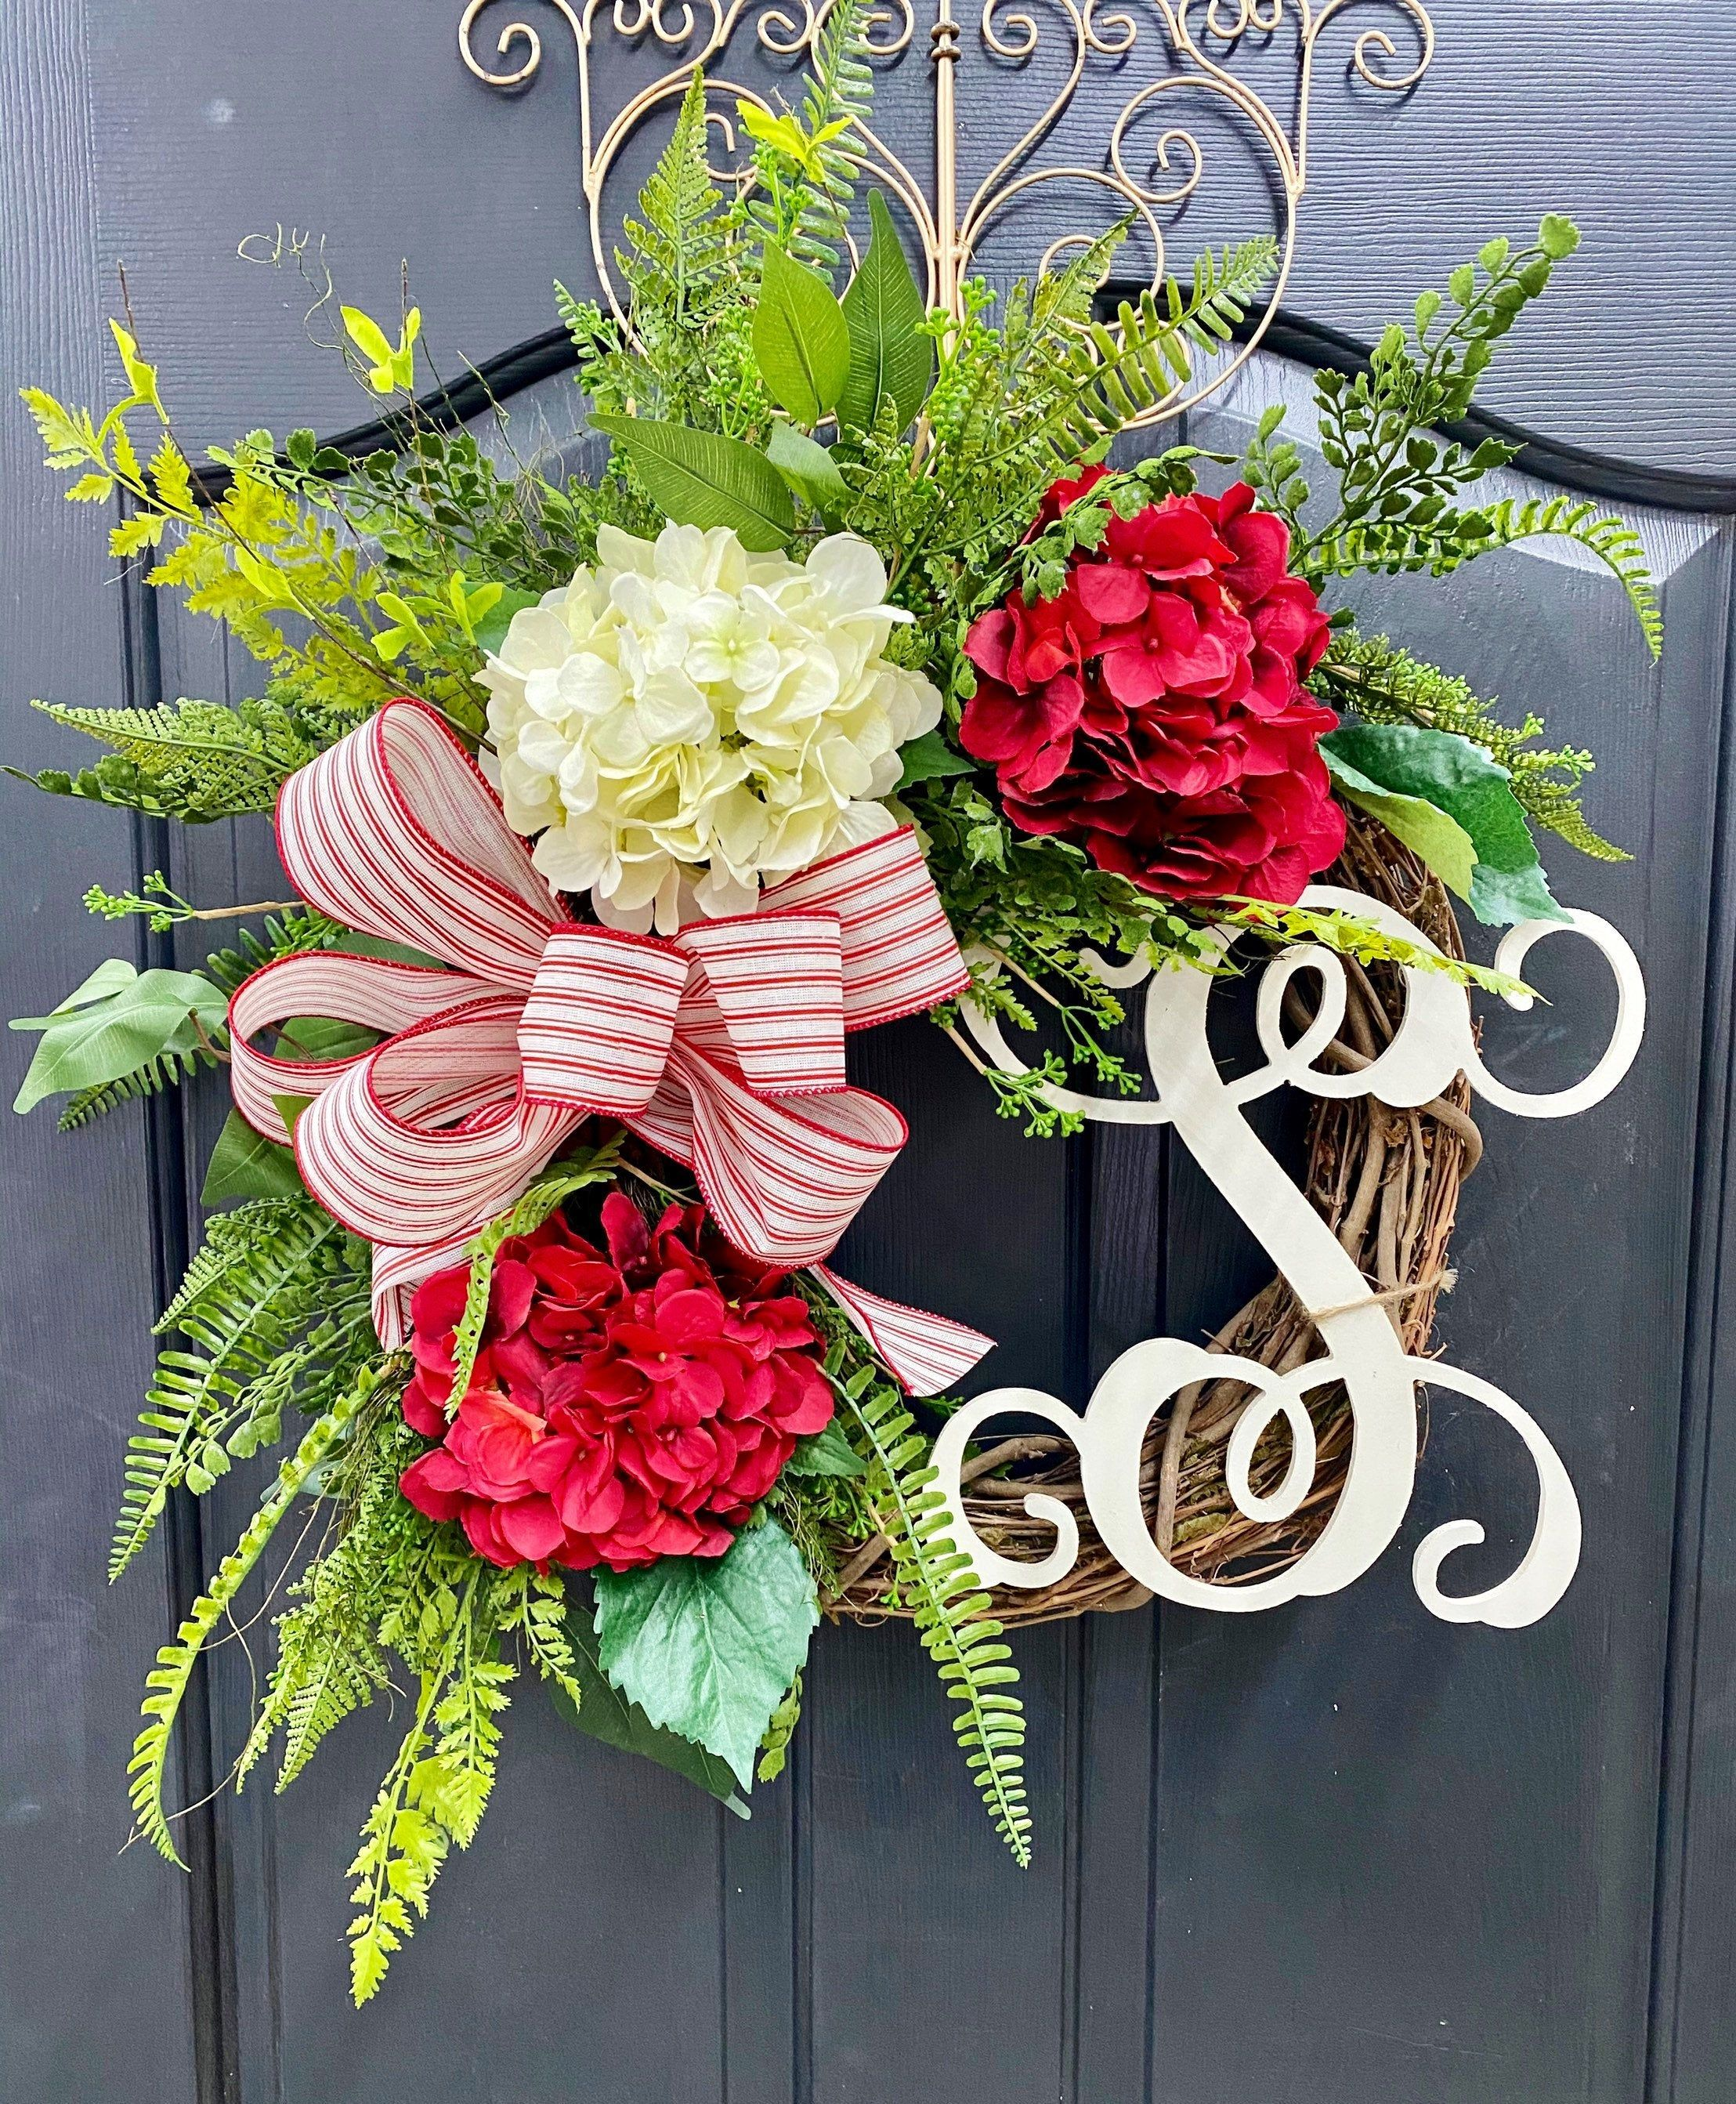 NEW!!! Wreath Making Kit! DIY Wreath Making Kit, Monogram